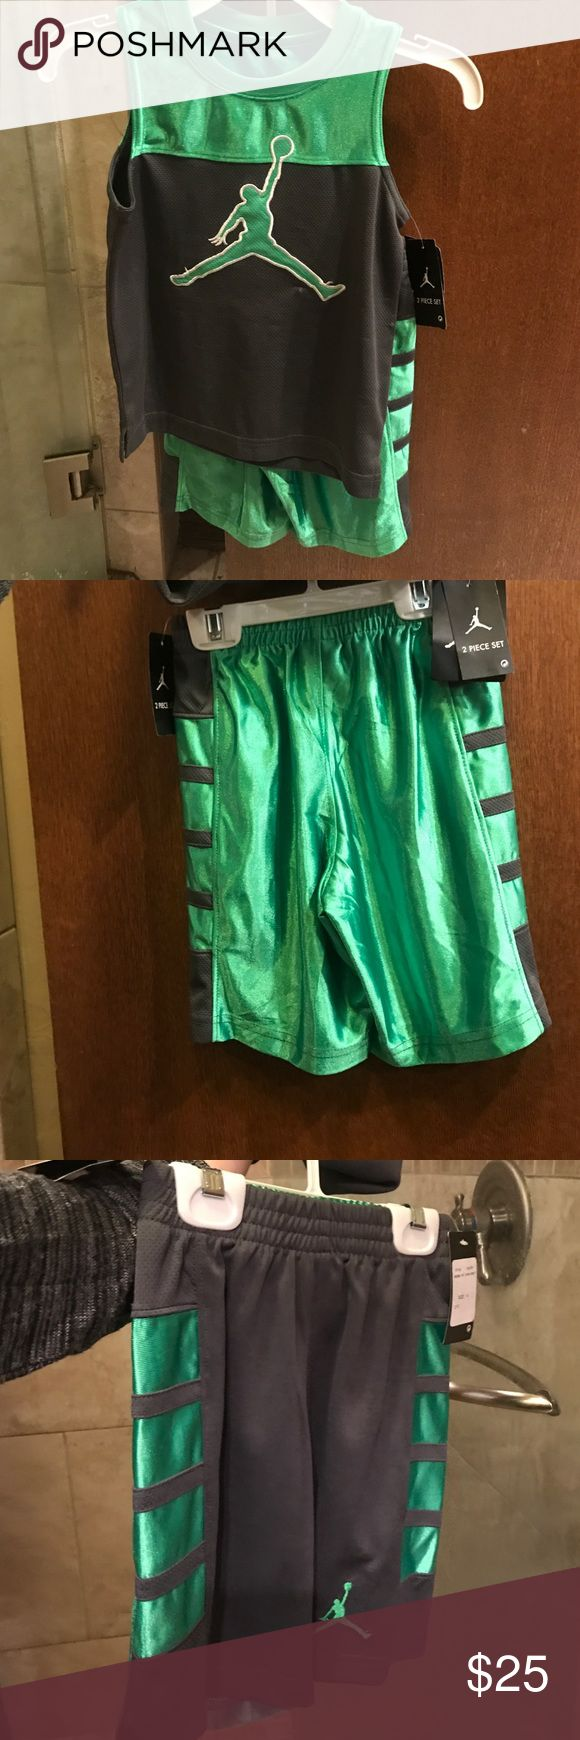 Jordan outfit Green boys Jordan outfit very cute new with tags size 4T !!! Jordan Matching Sets